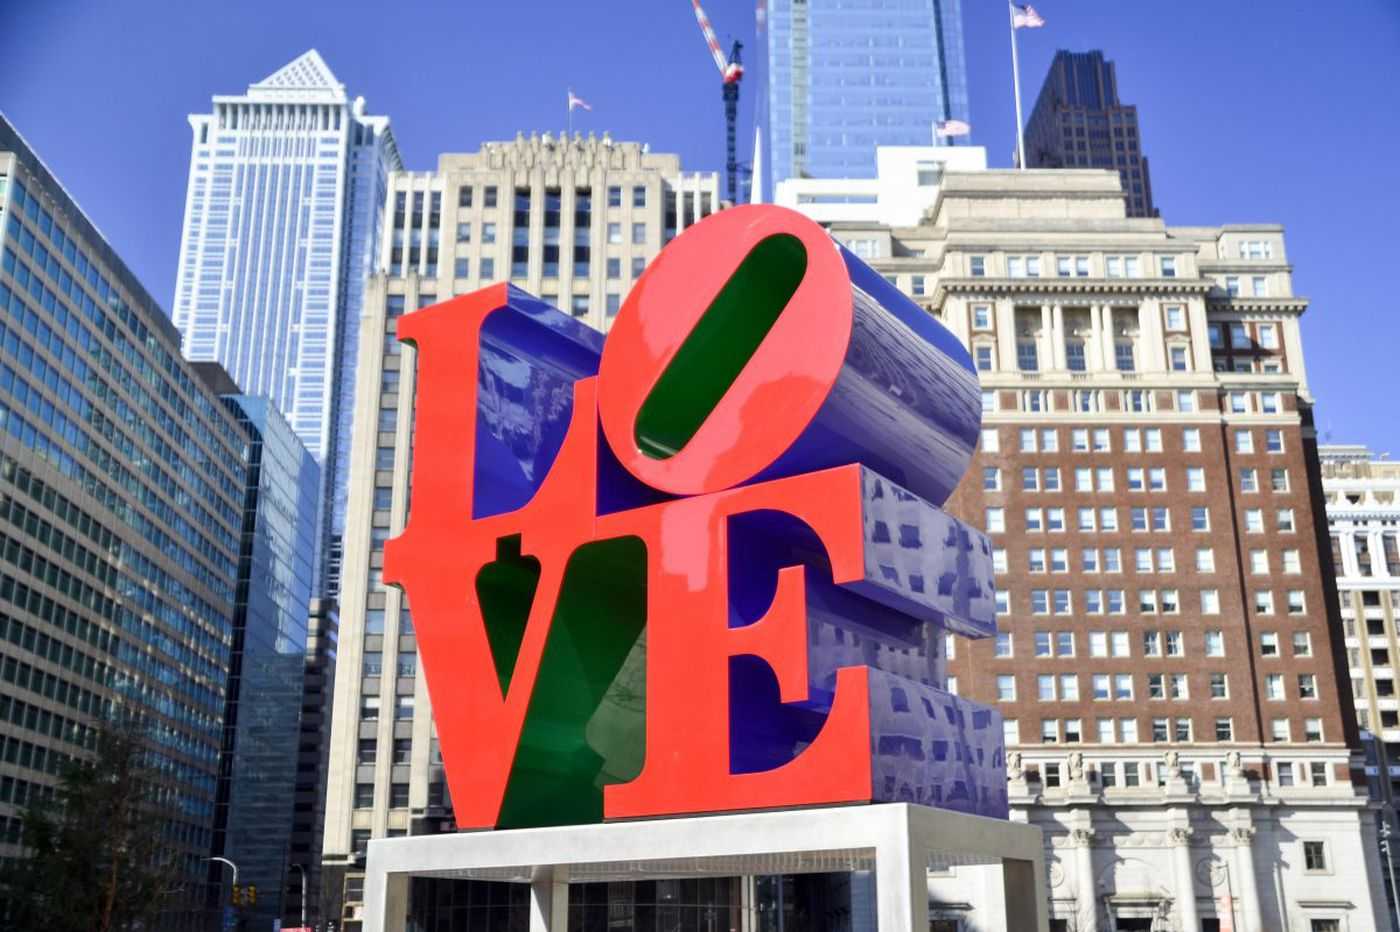 LOVE sculpture symbolizes 'what we hope for, cherish, and memorialize' | Opinion